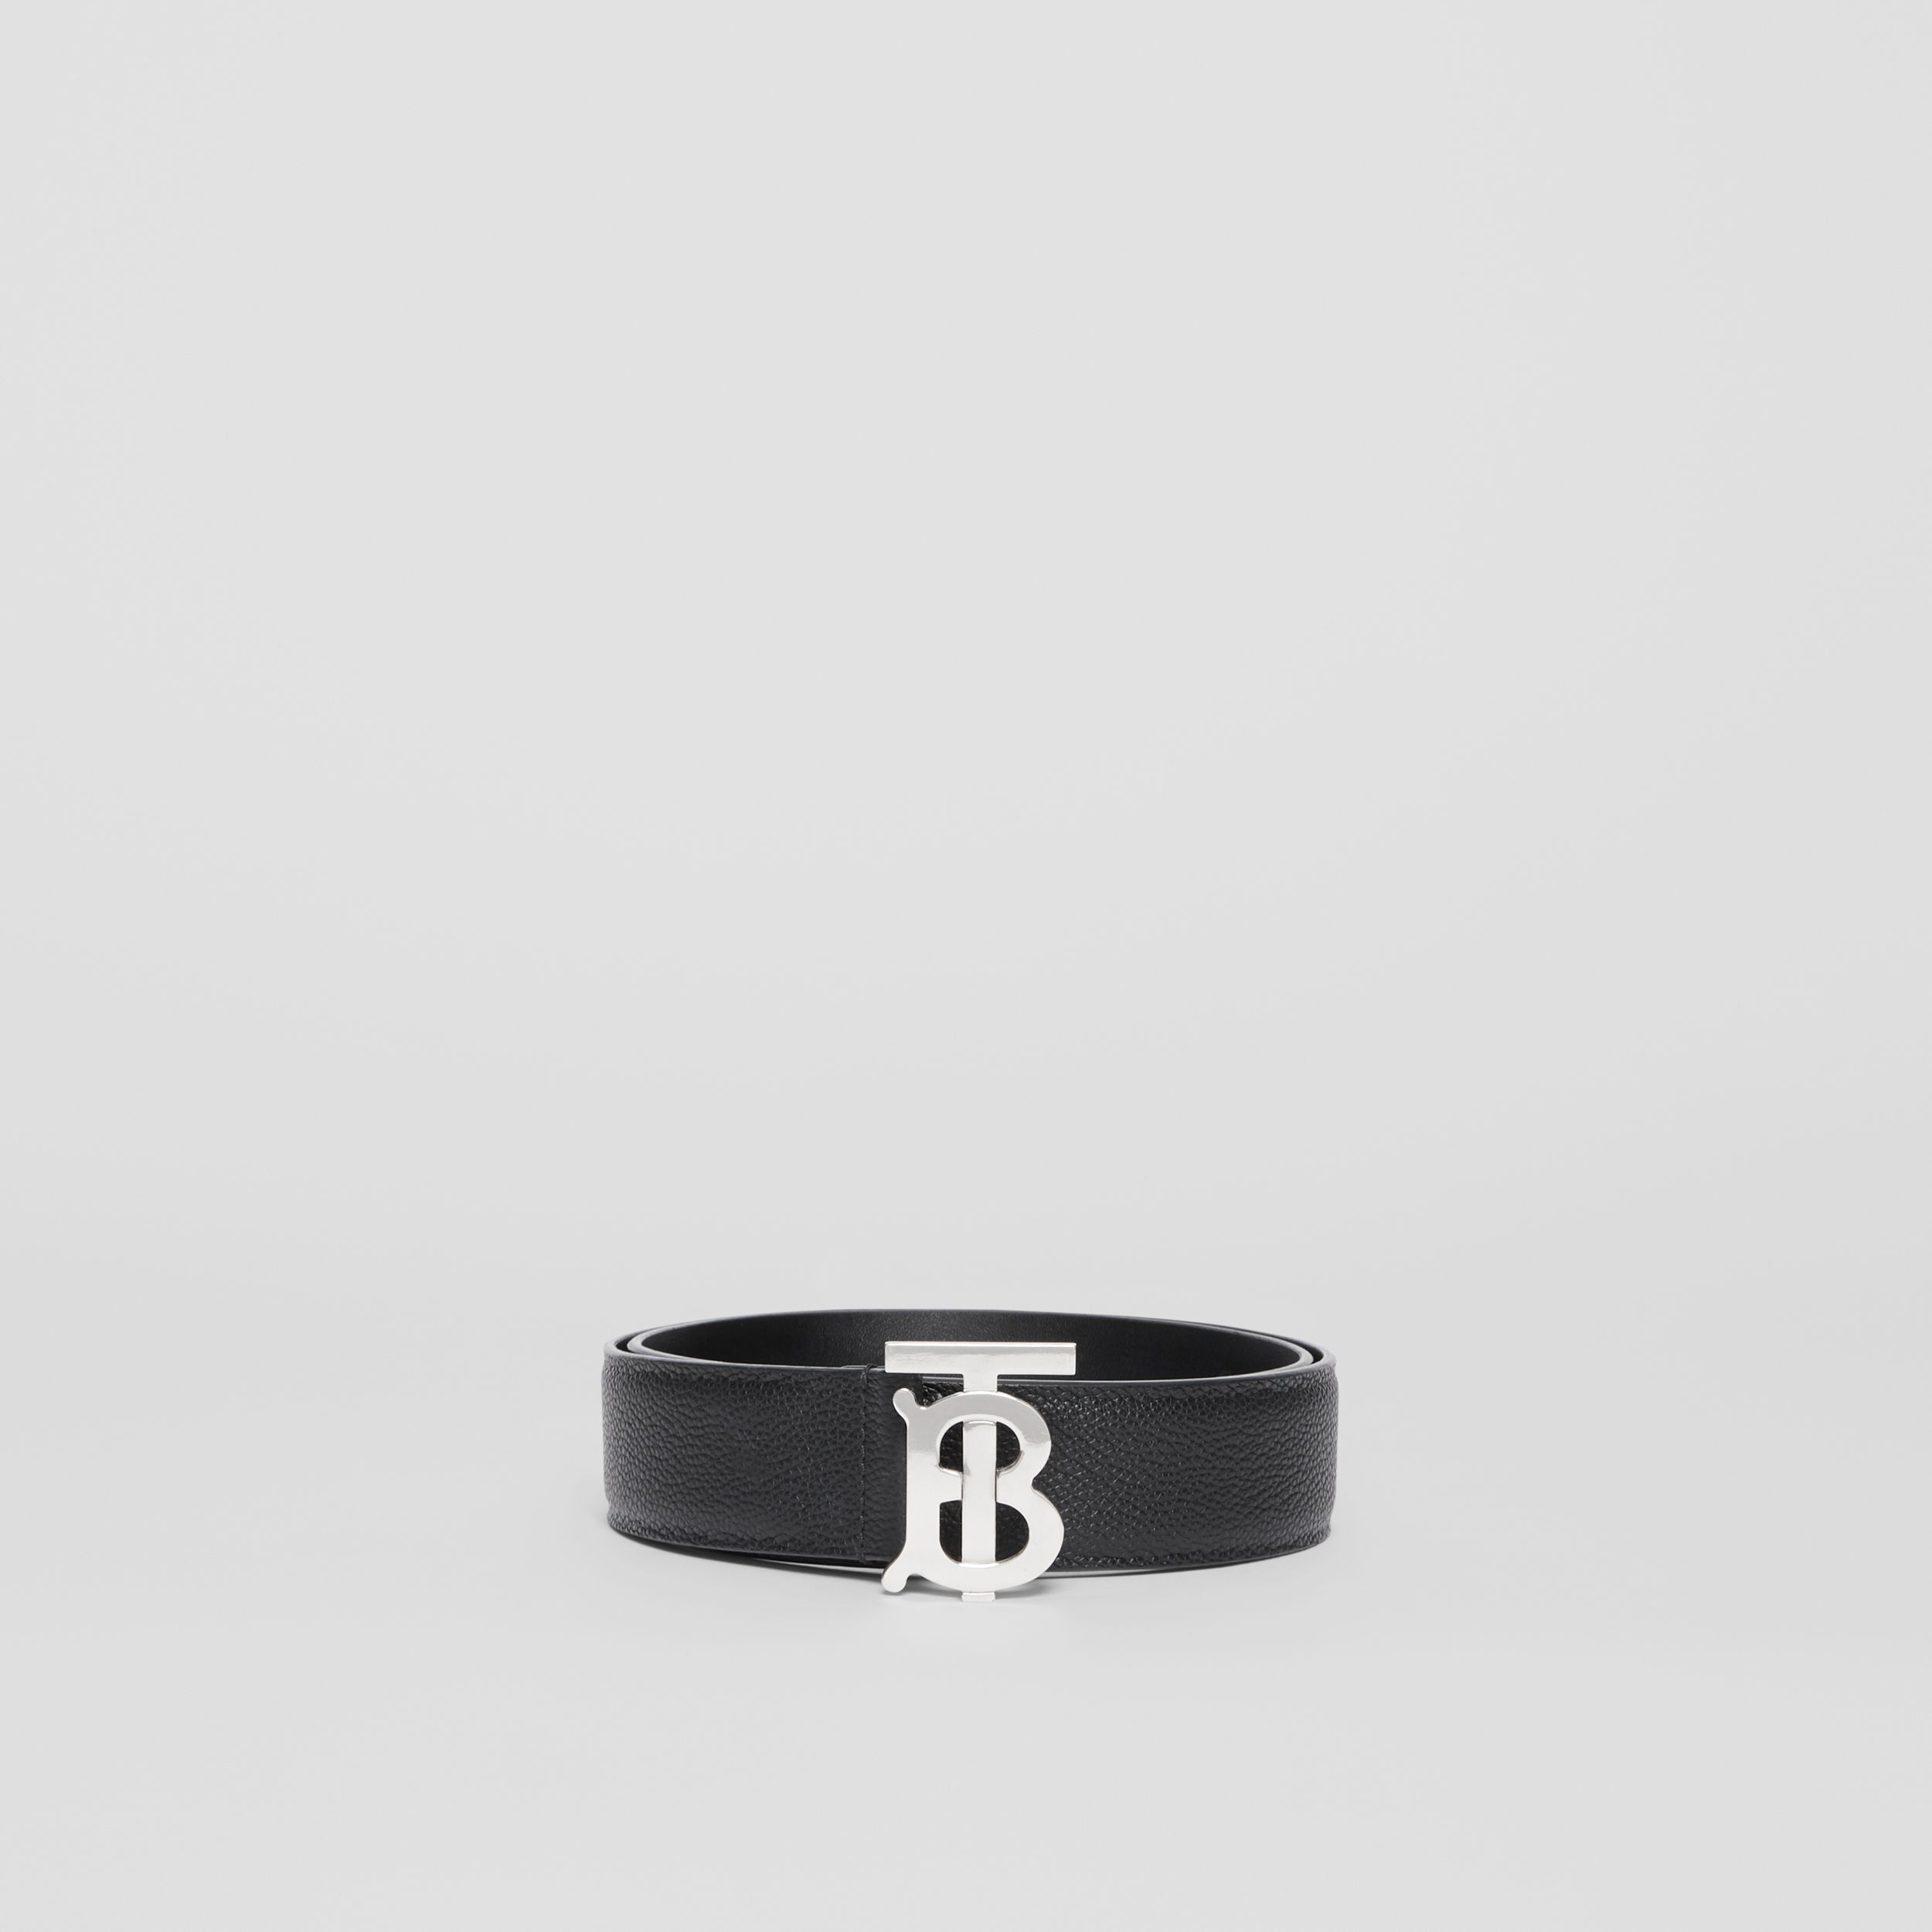 Monogram Motif Grainy Leather Belt in Black - Men | Burberry Singapore - 3